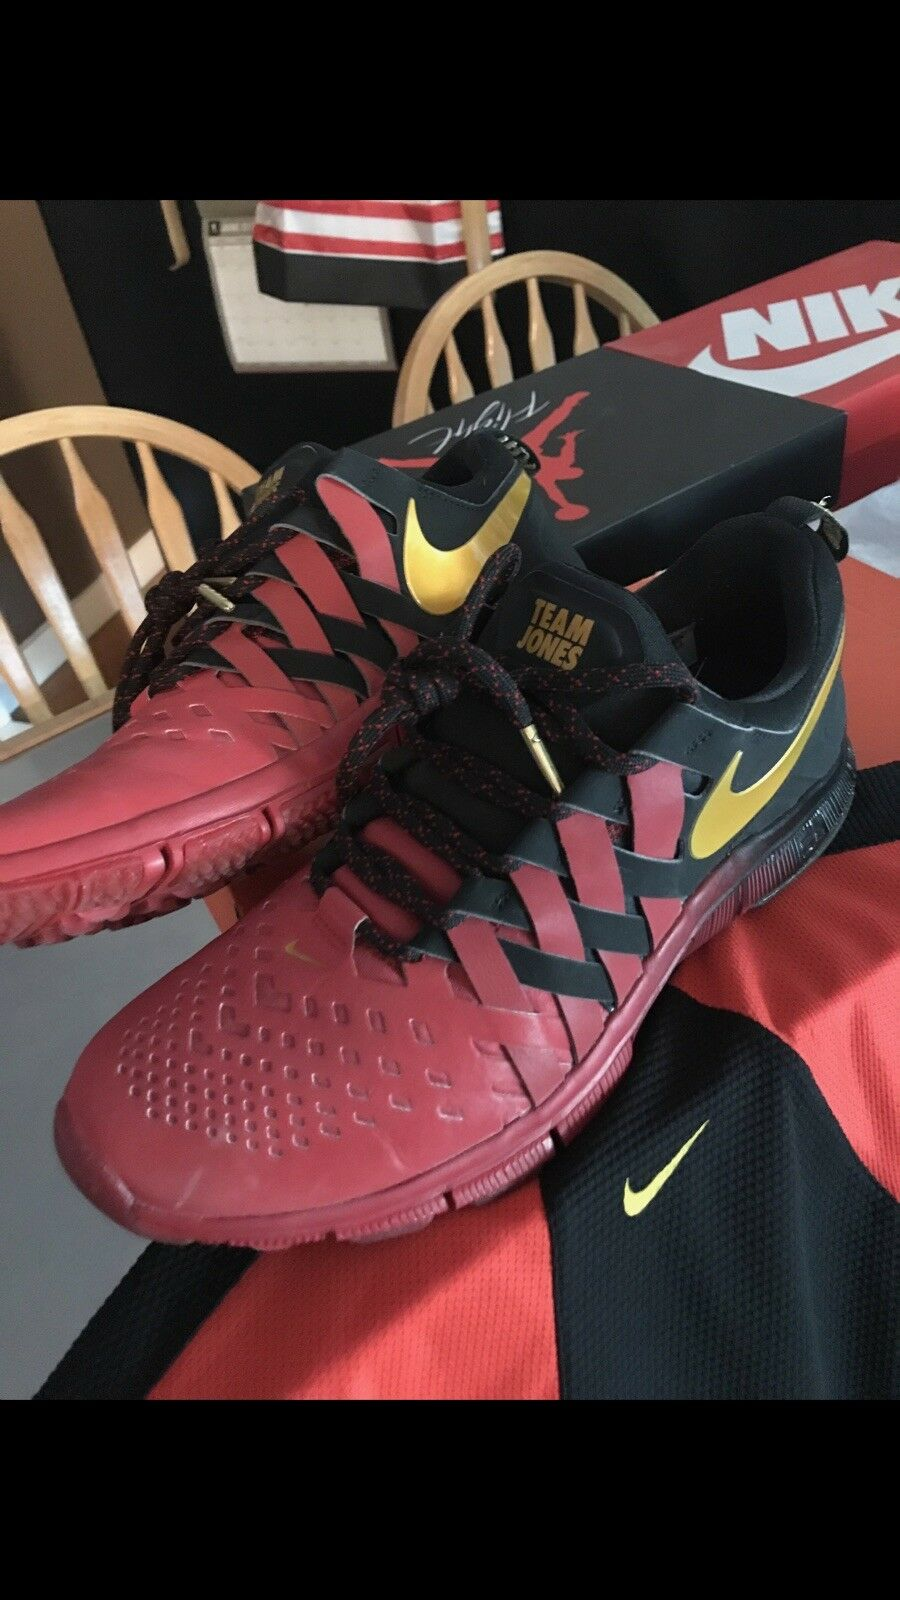 nike free 5.0 mens 10.5  Cheap and fashionable